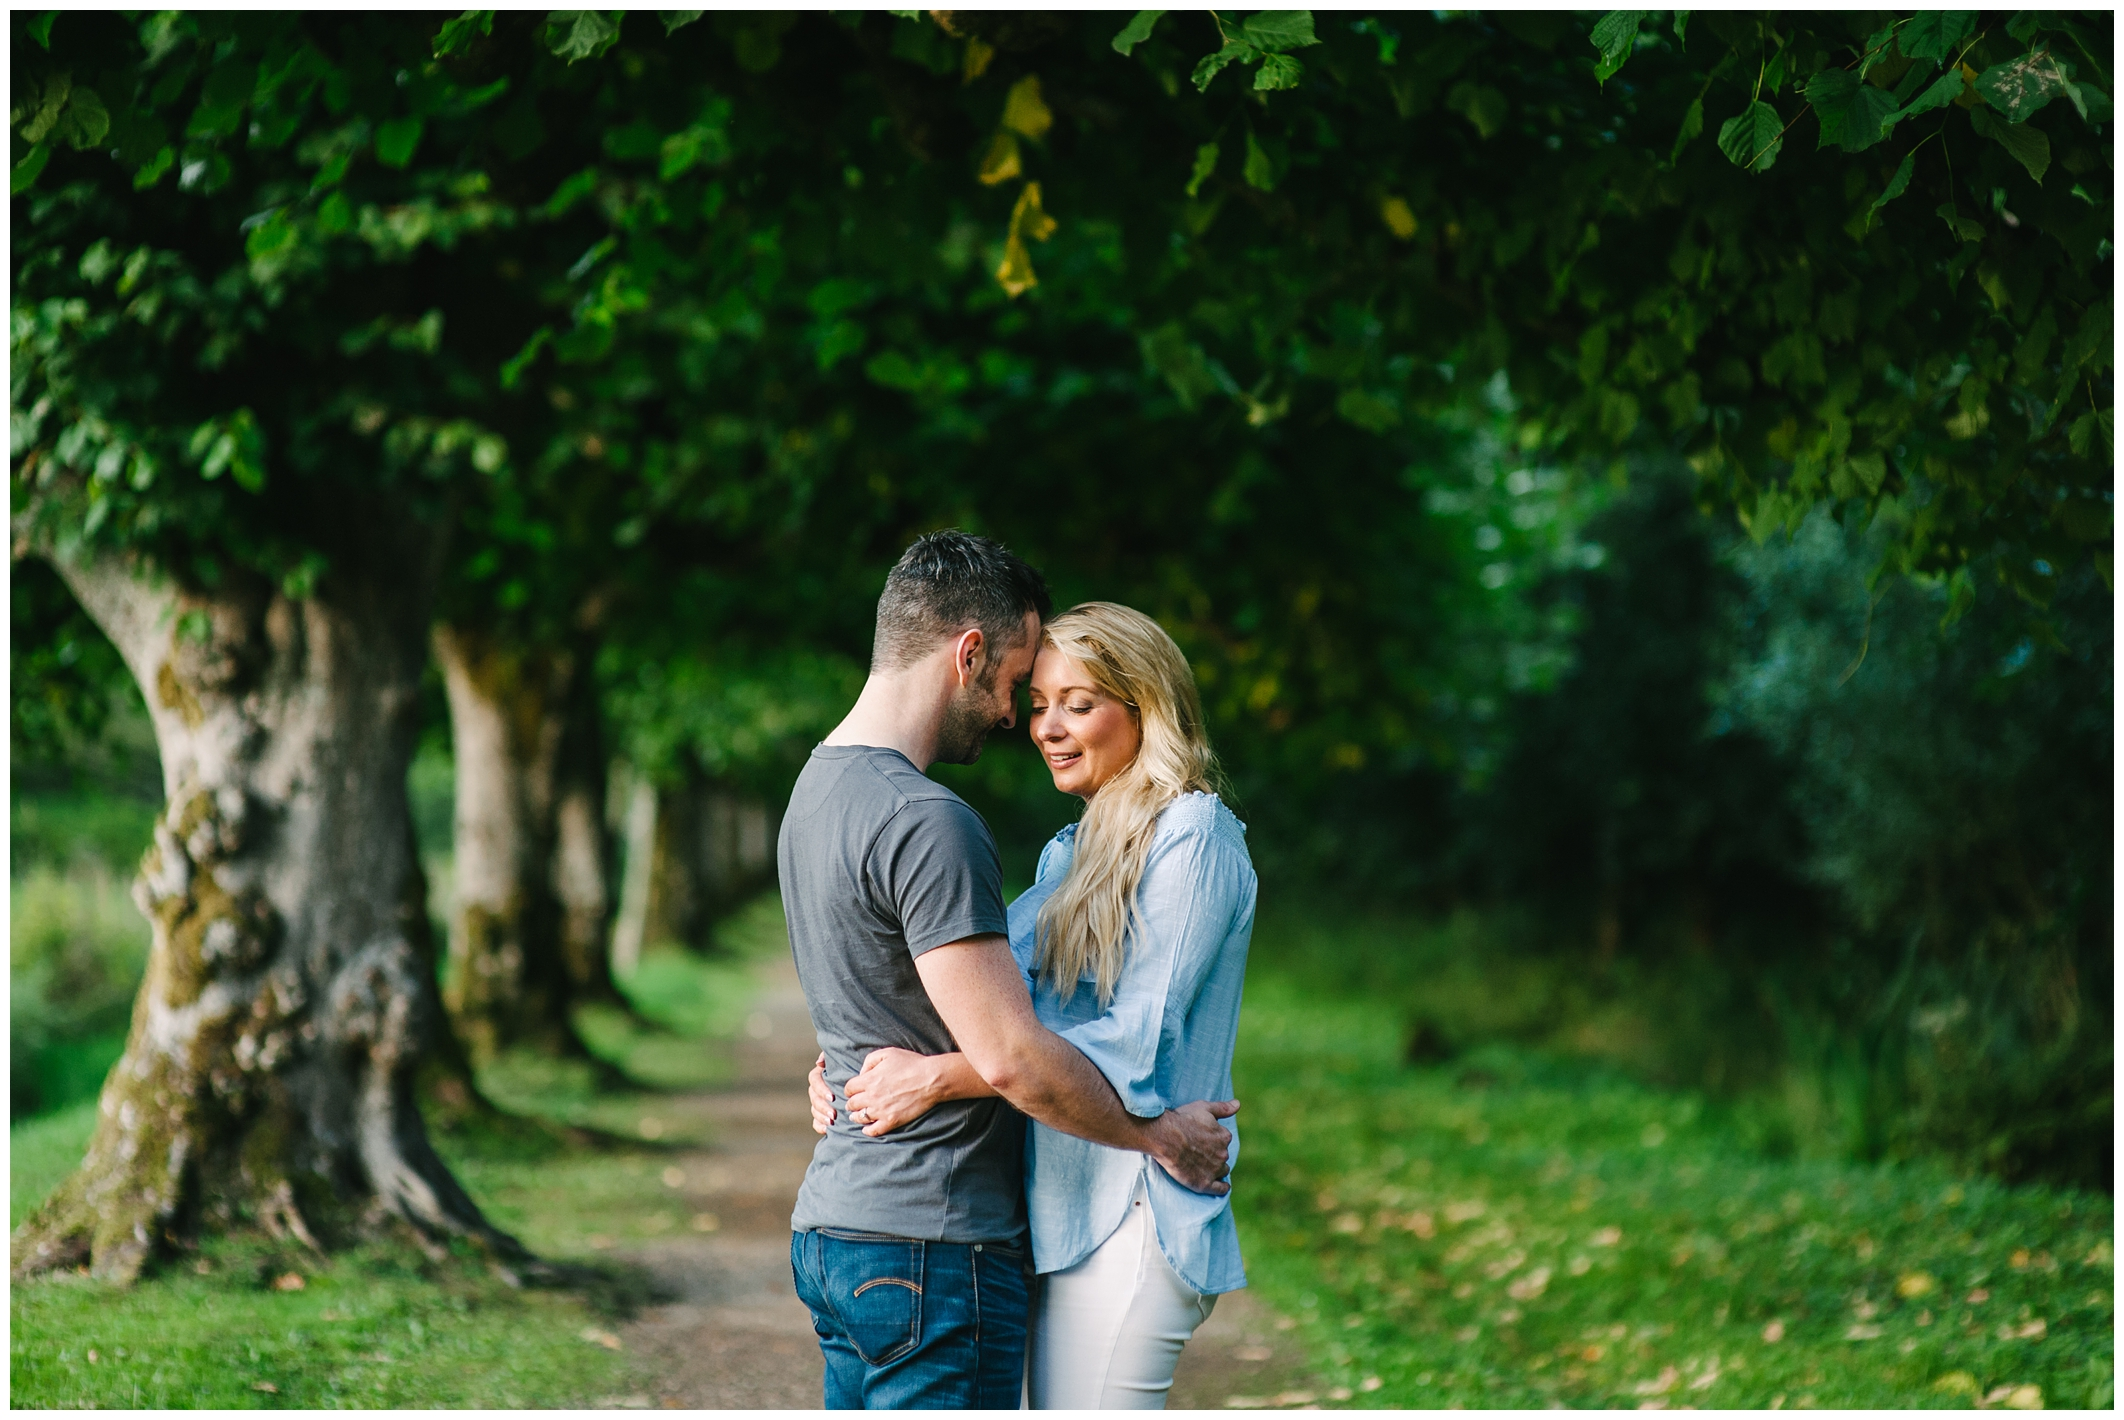 louise_keith_pre_wedding_armagh_jude_browne_photography_0006.jpg